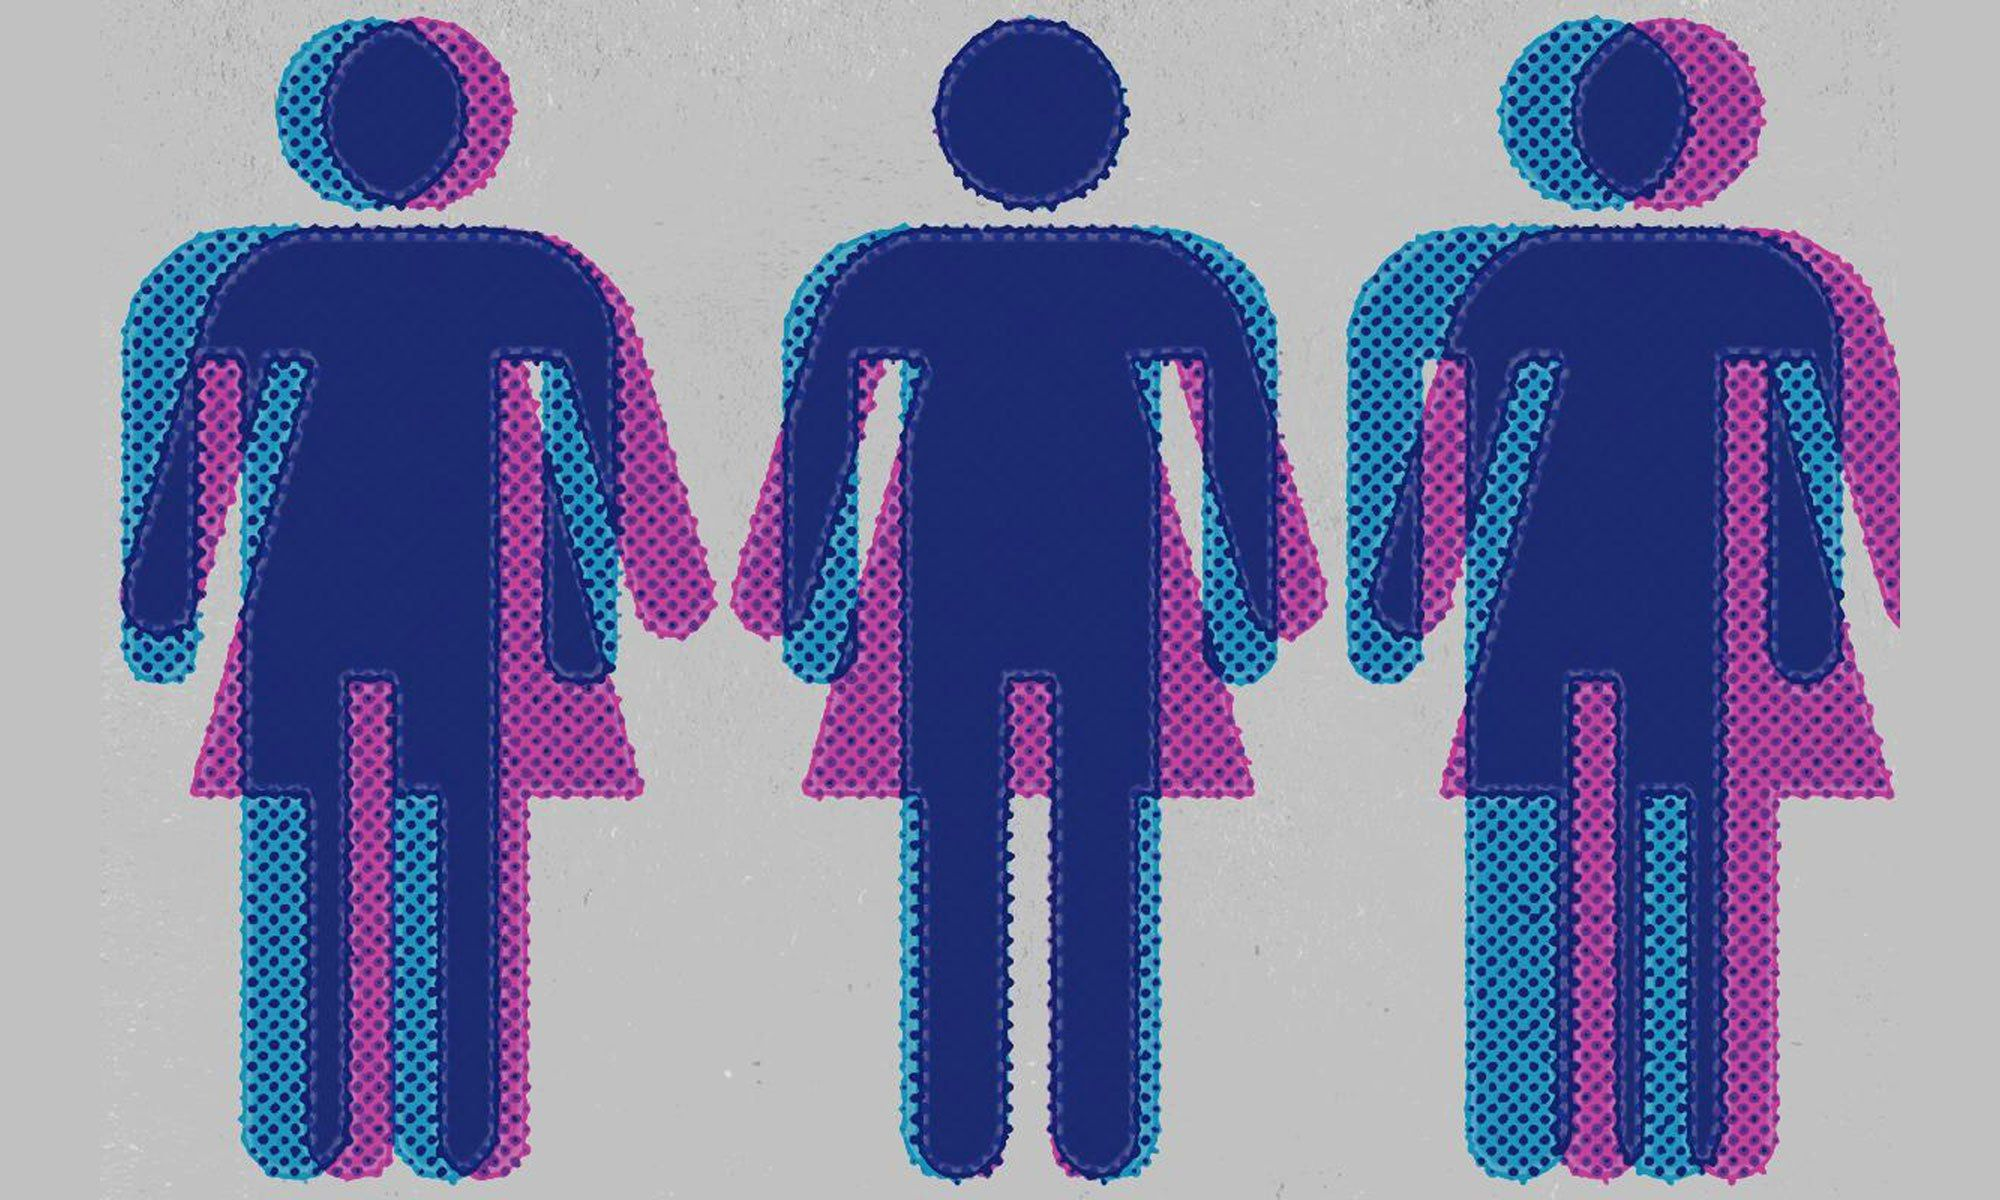 Transsexualism and gender identity disorder